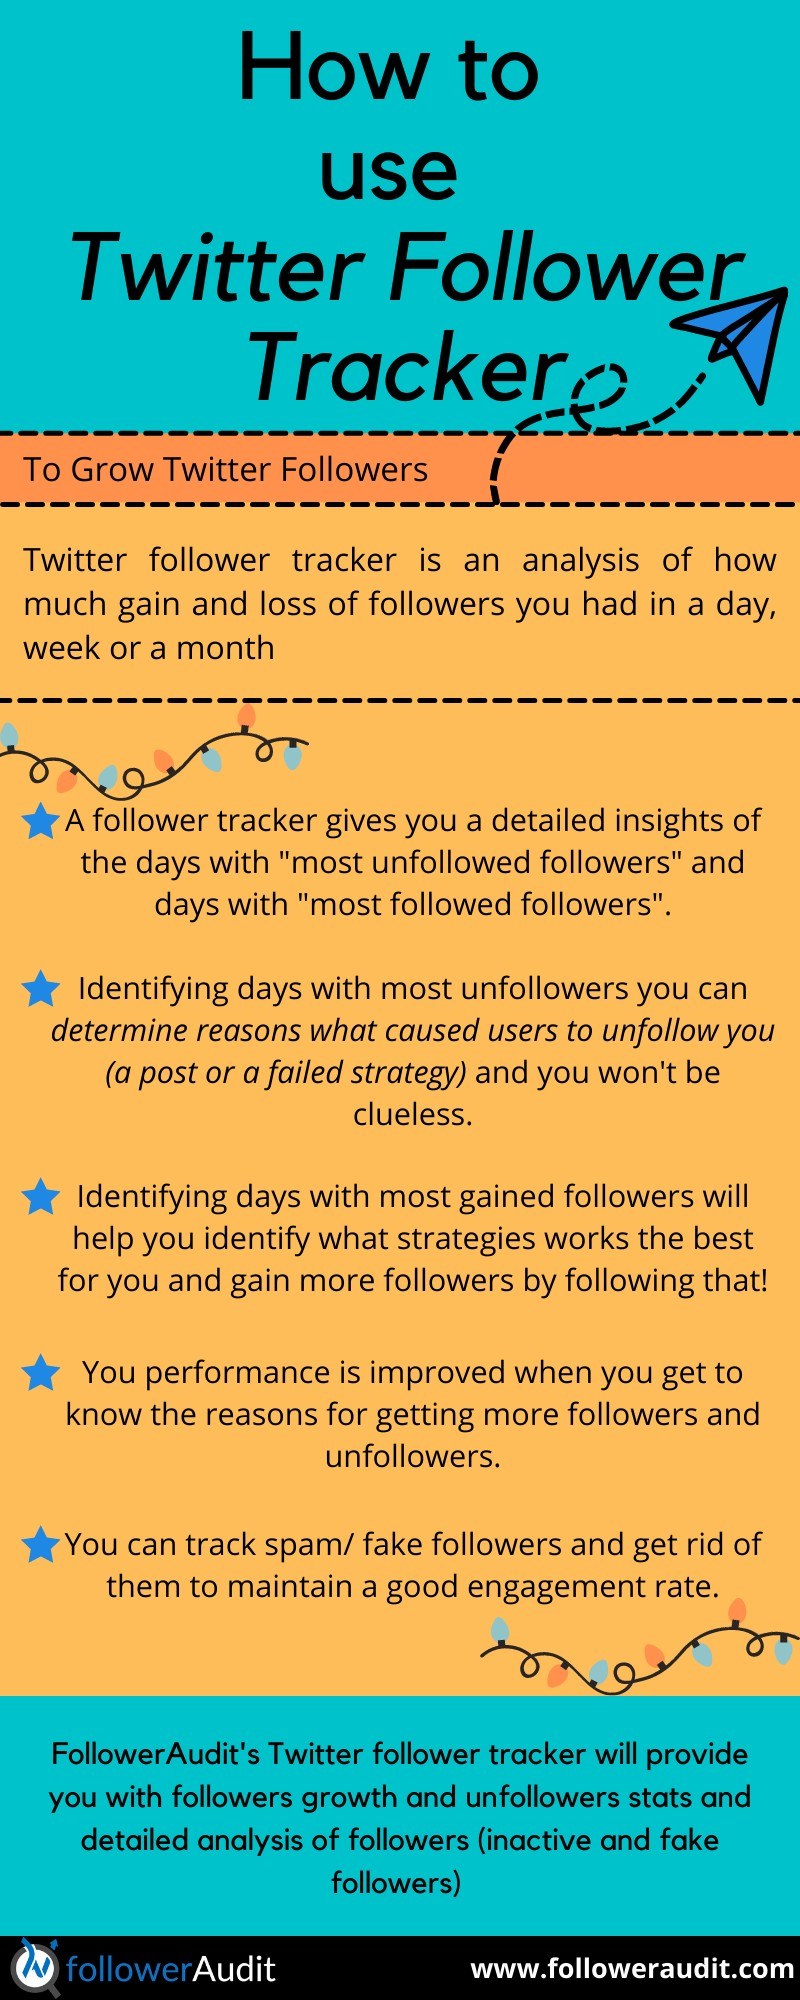 How to use Twitter Follower Tracker